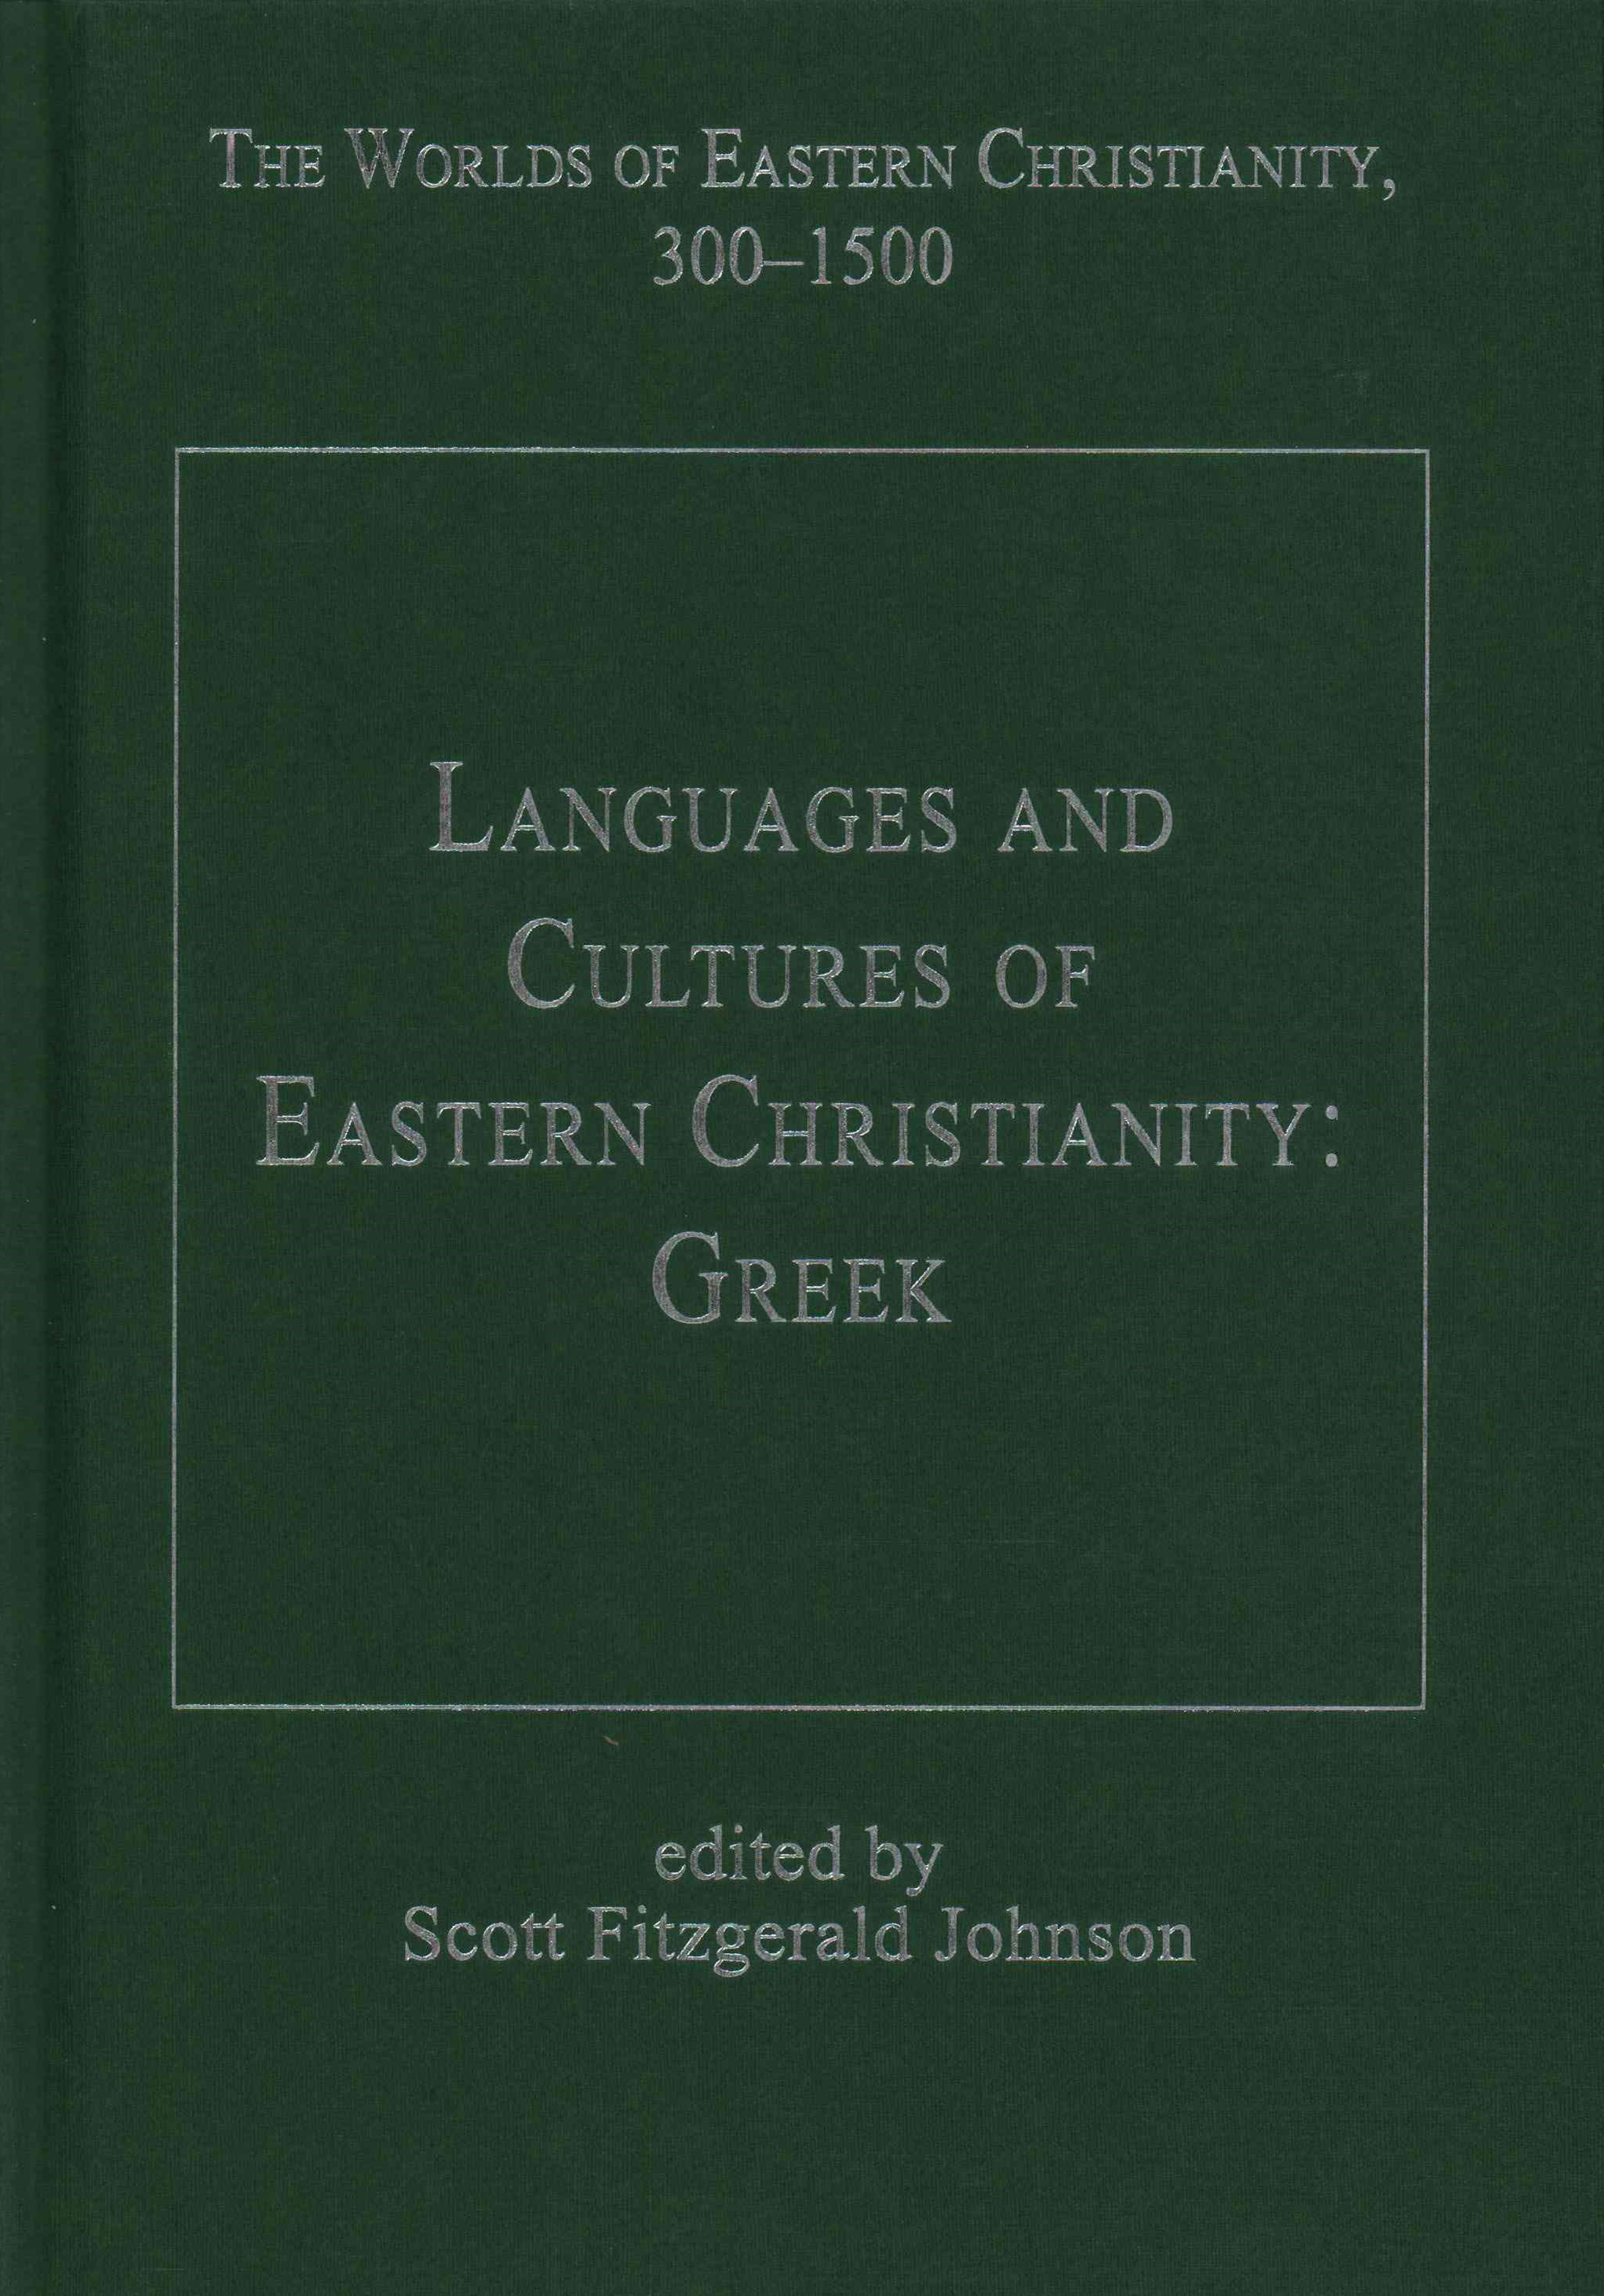 Languages and Cultures of Eastern Christianity